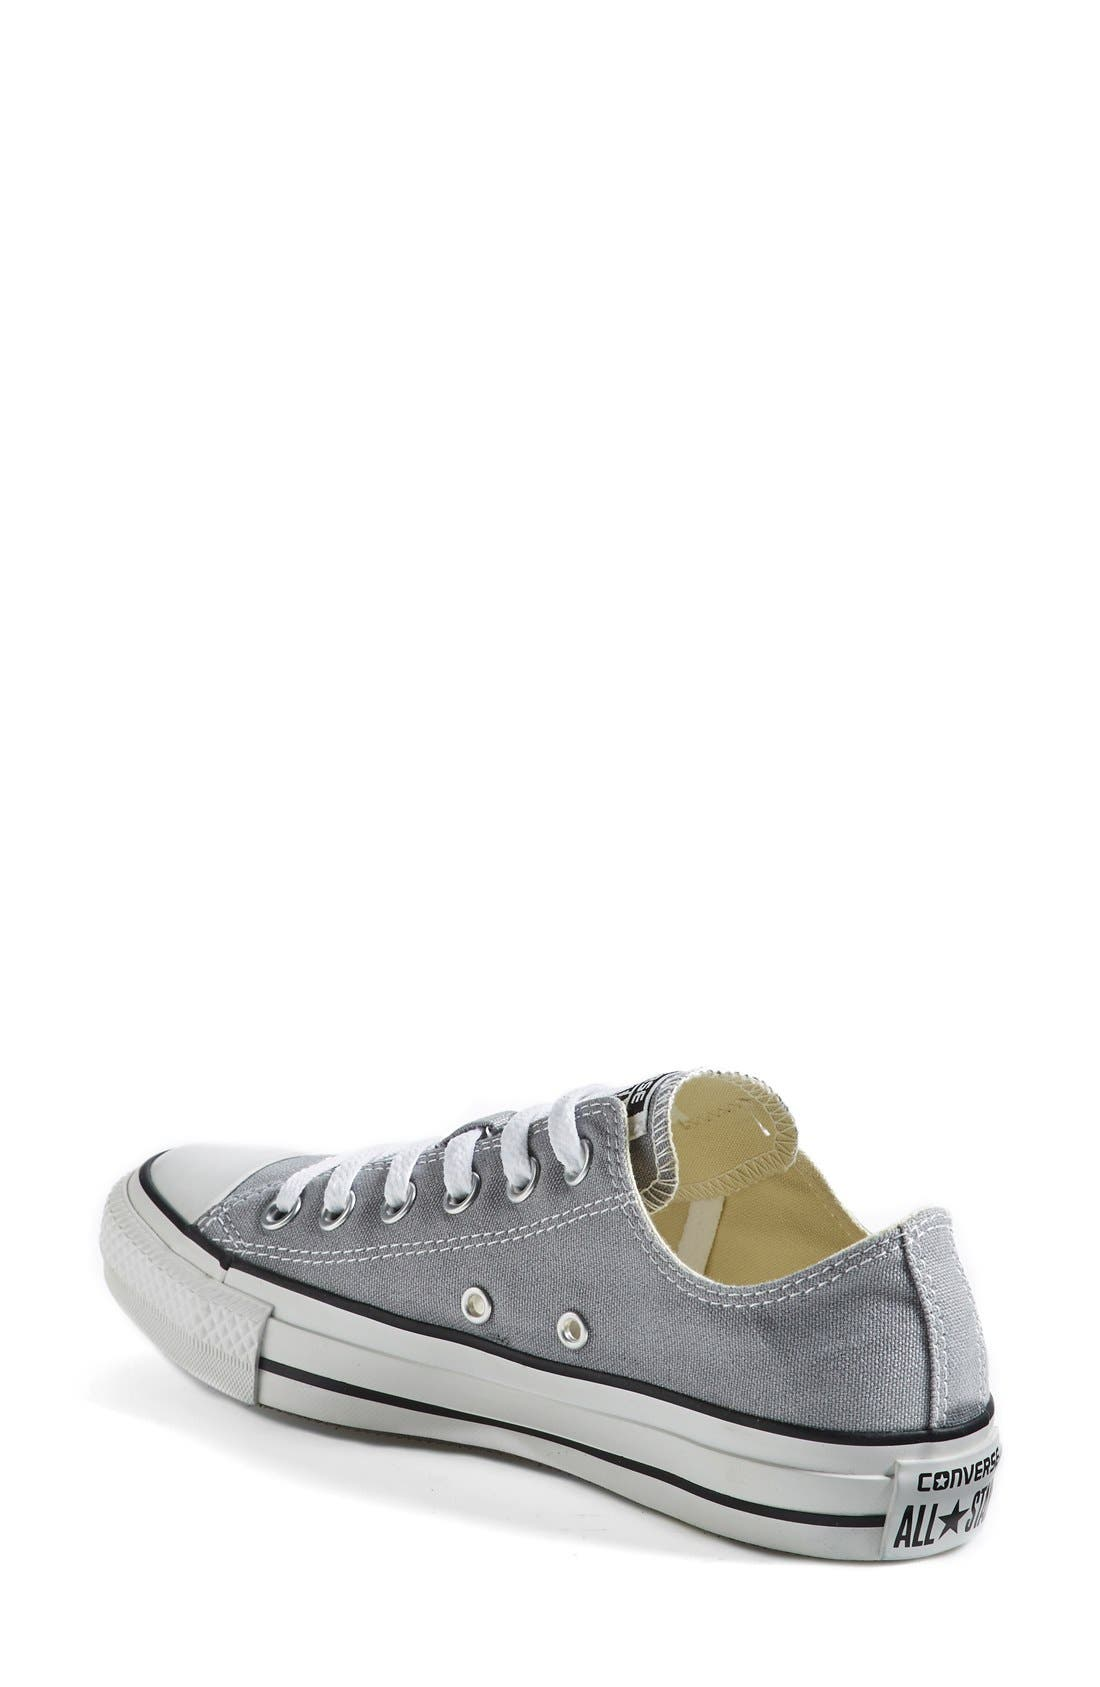 Chuck Taylor<sup>®</sup> All Star<sup>®</sup> Sneaker,                             Alternate thumbnail 2, color,                             Dolphin